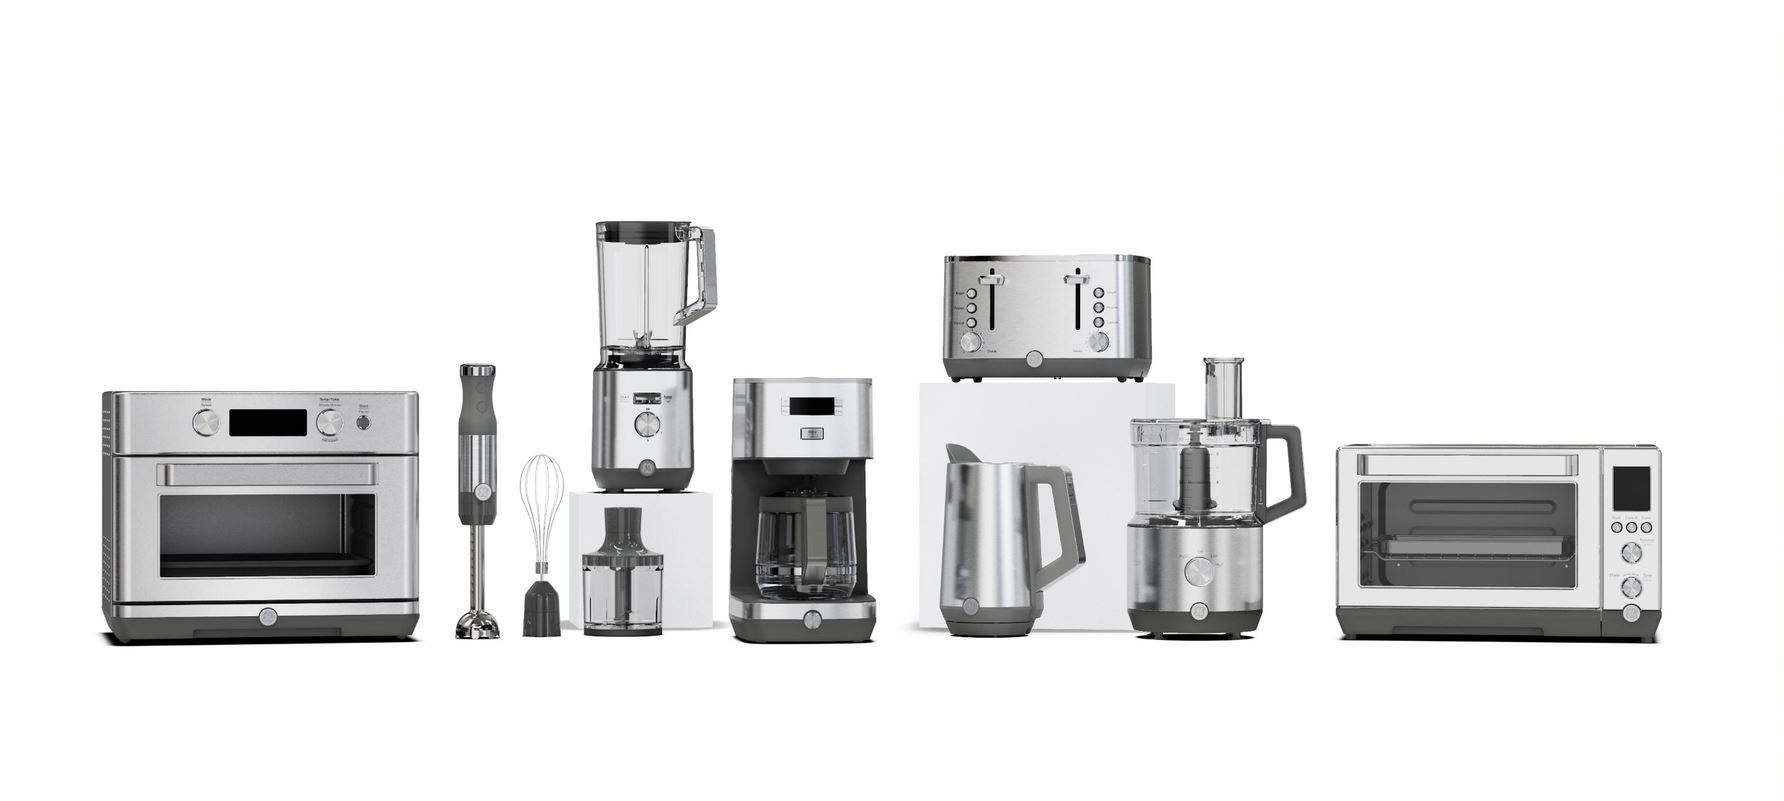 Ge Appliances Announces New Small Appliances Category Business Wire